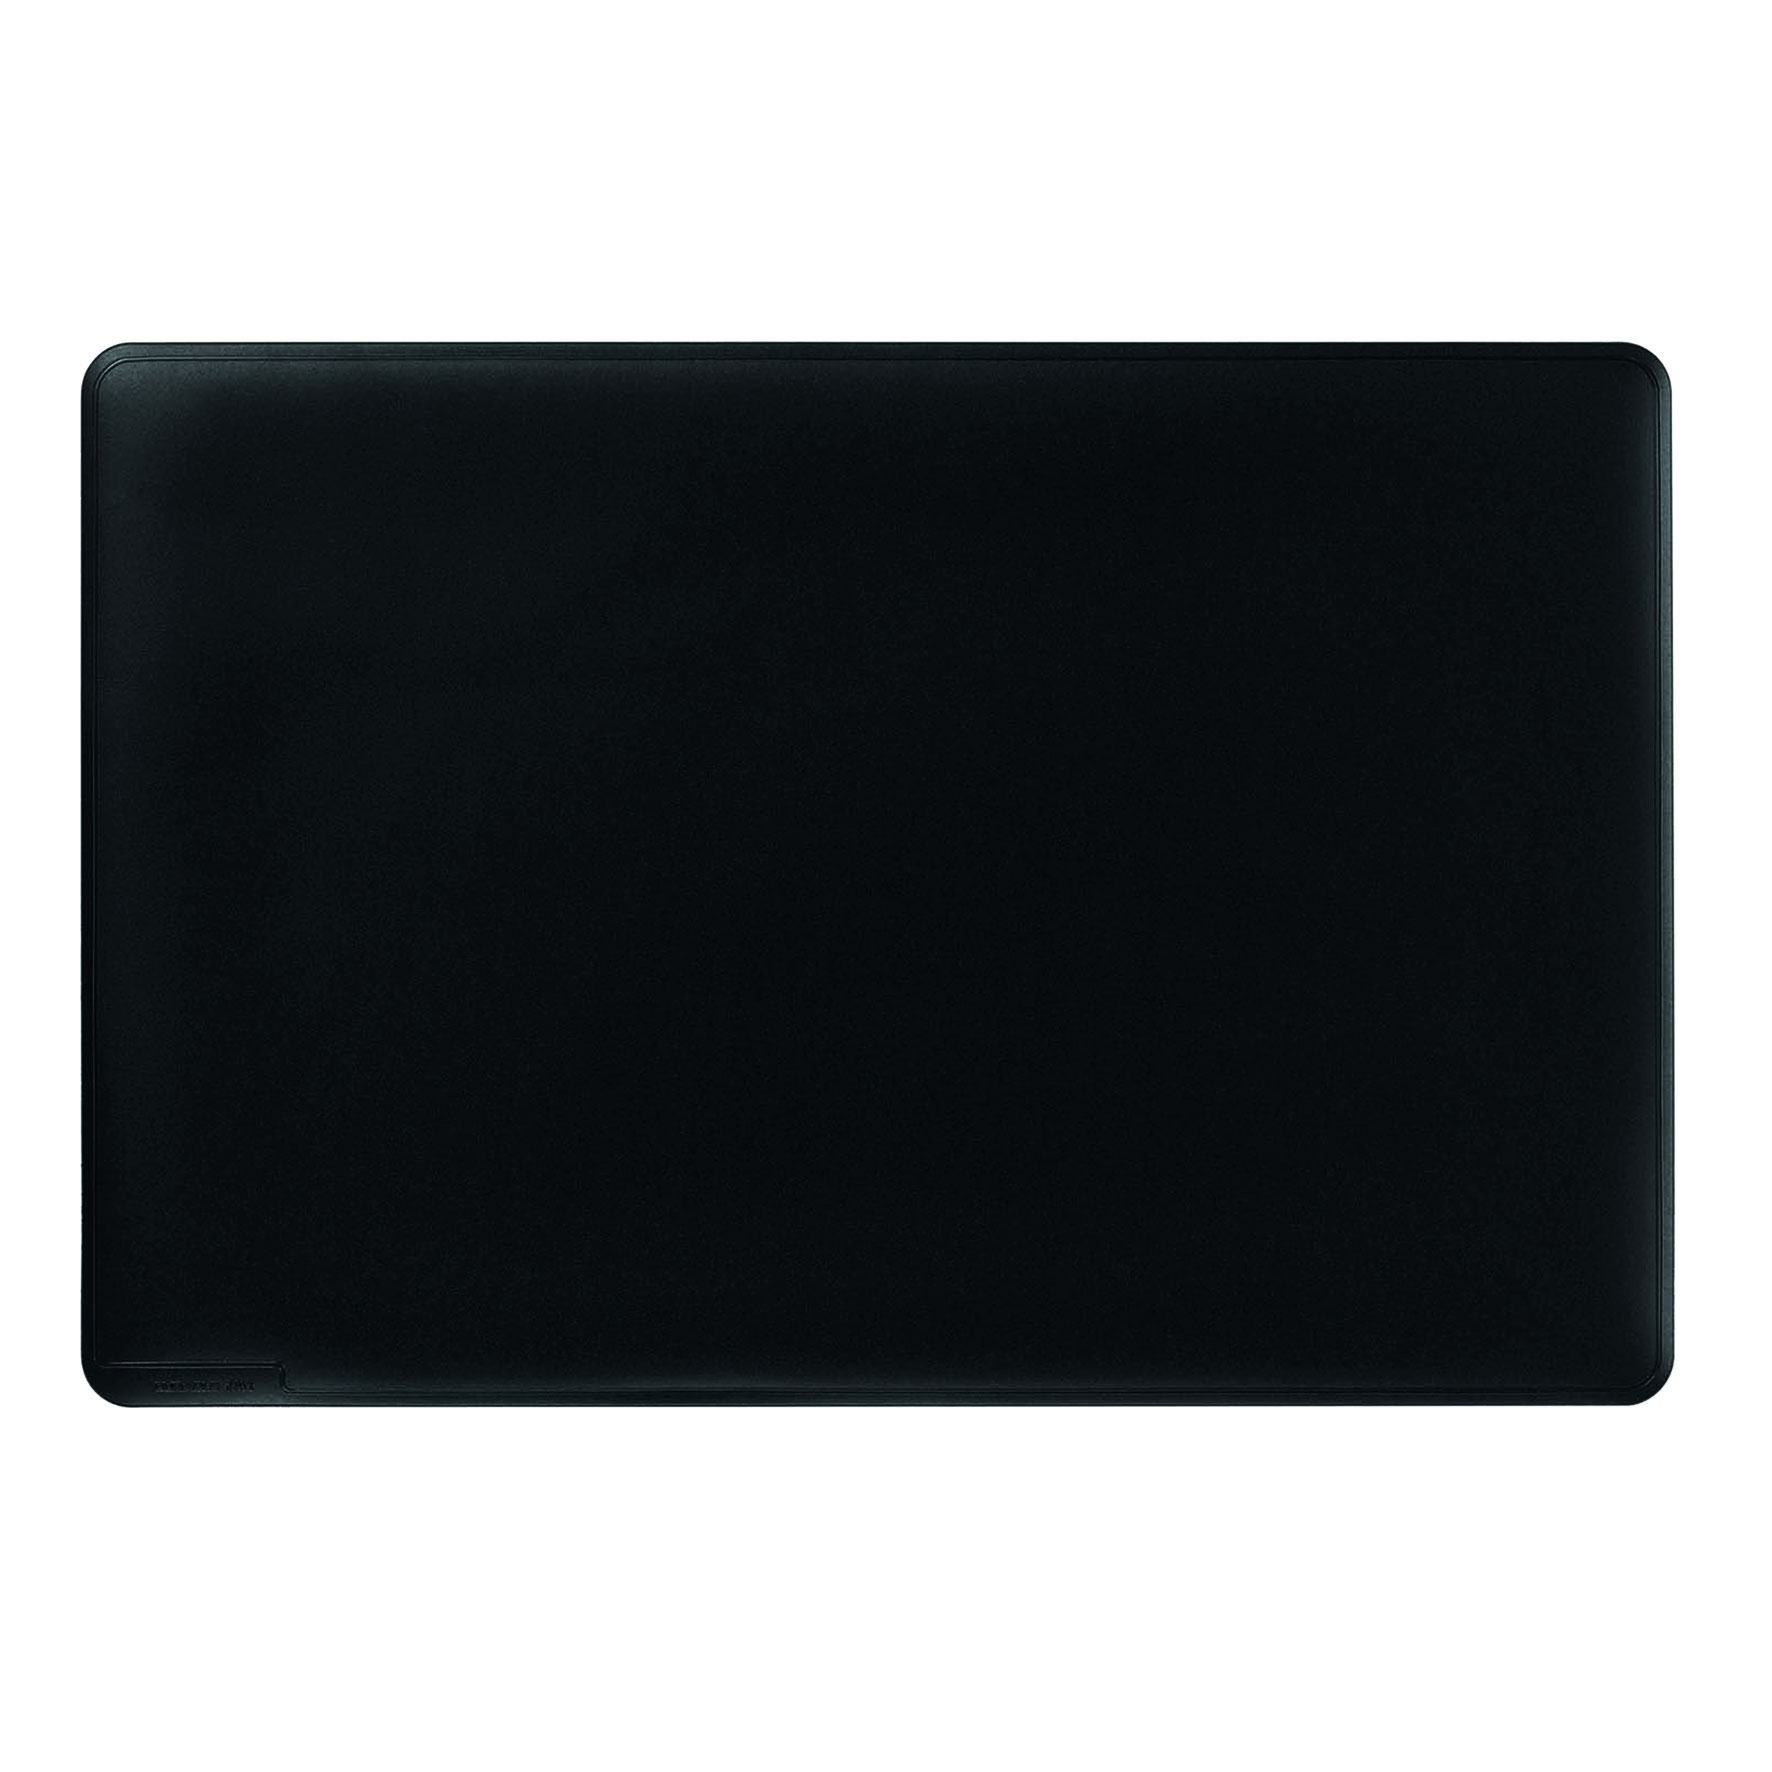 Durable Duraglas Desk Mat 530x400mm Black 7102/01